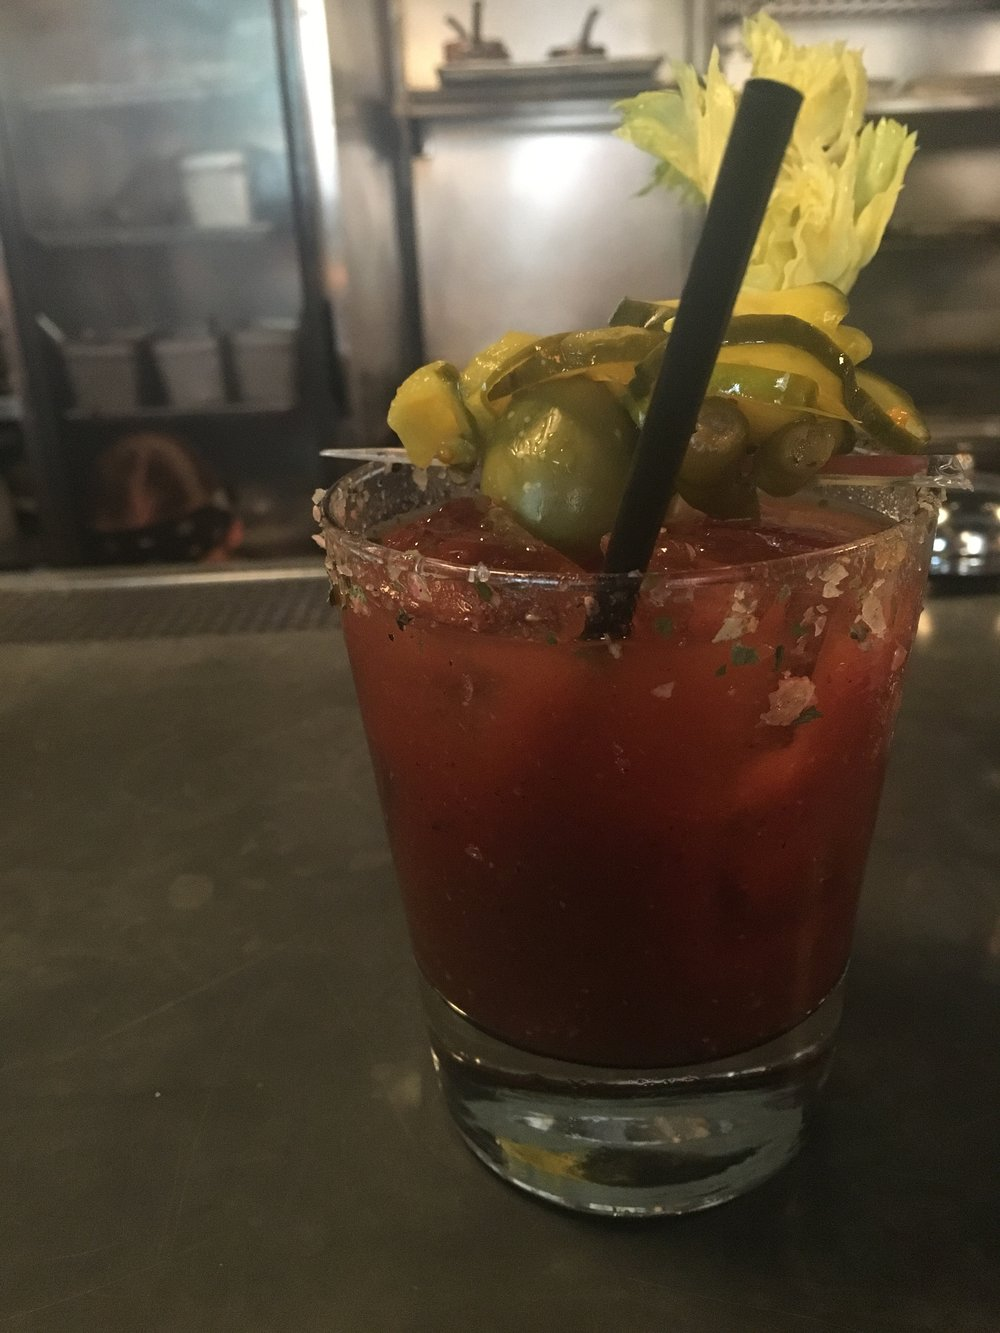 Bloody Mary - Tito's, V8, horseradish, black pepper